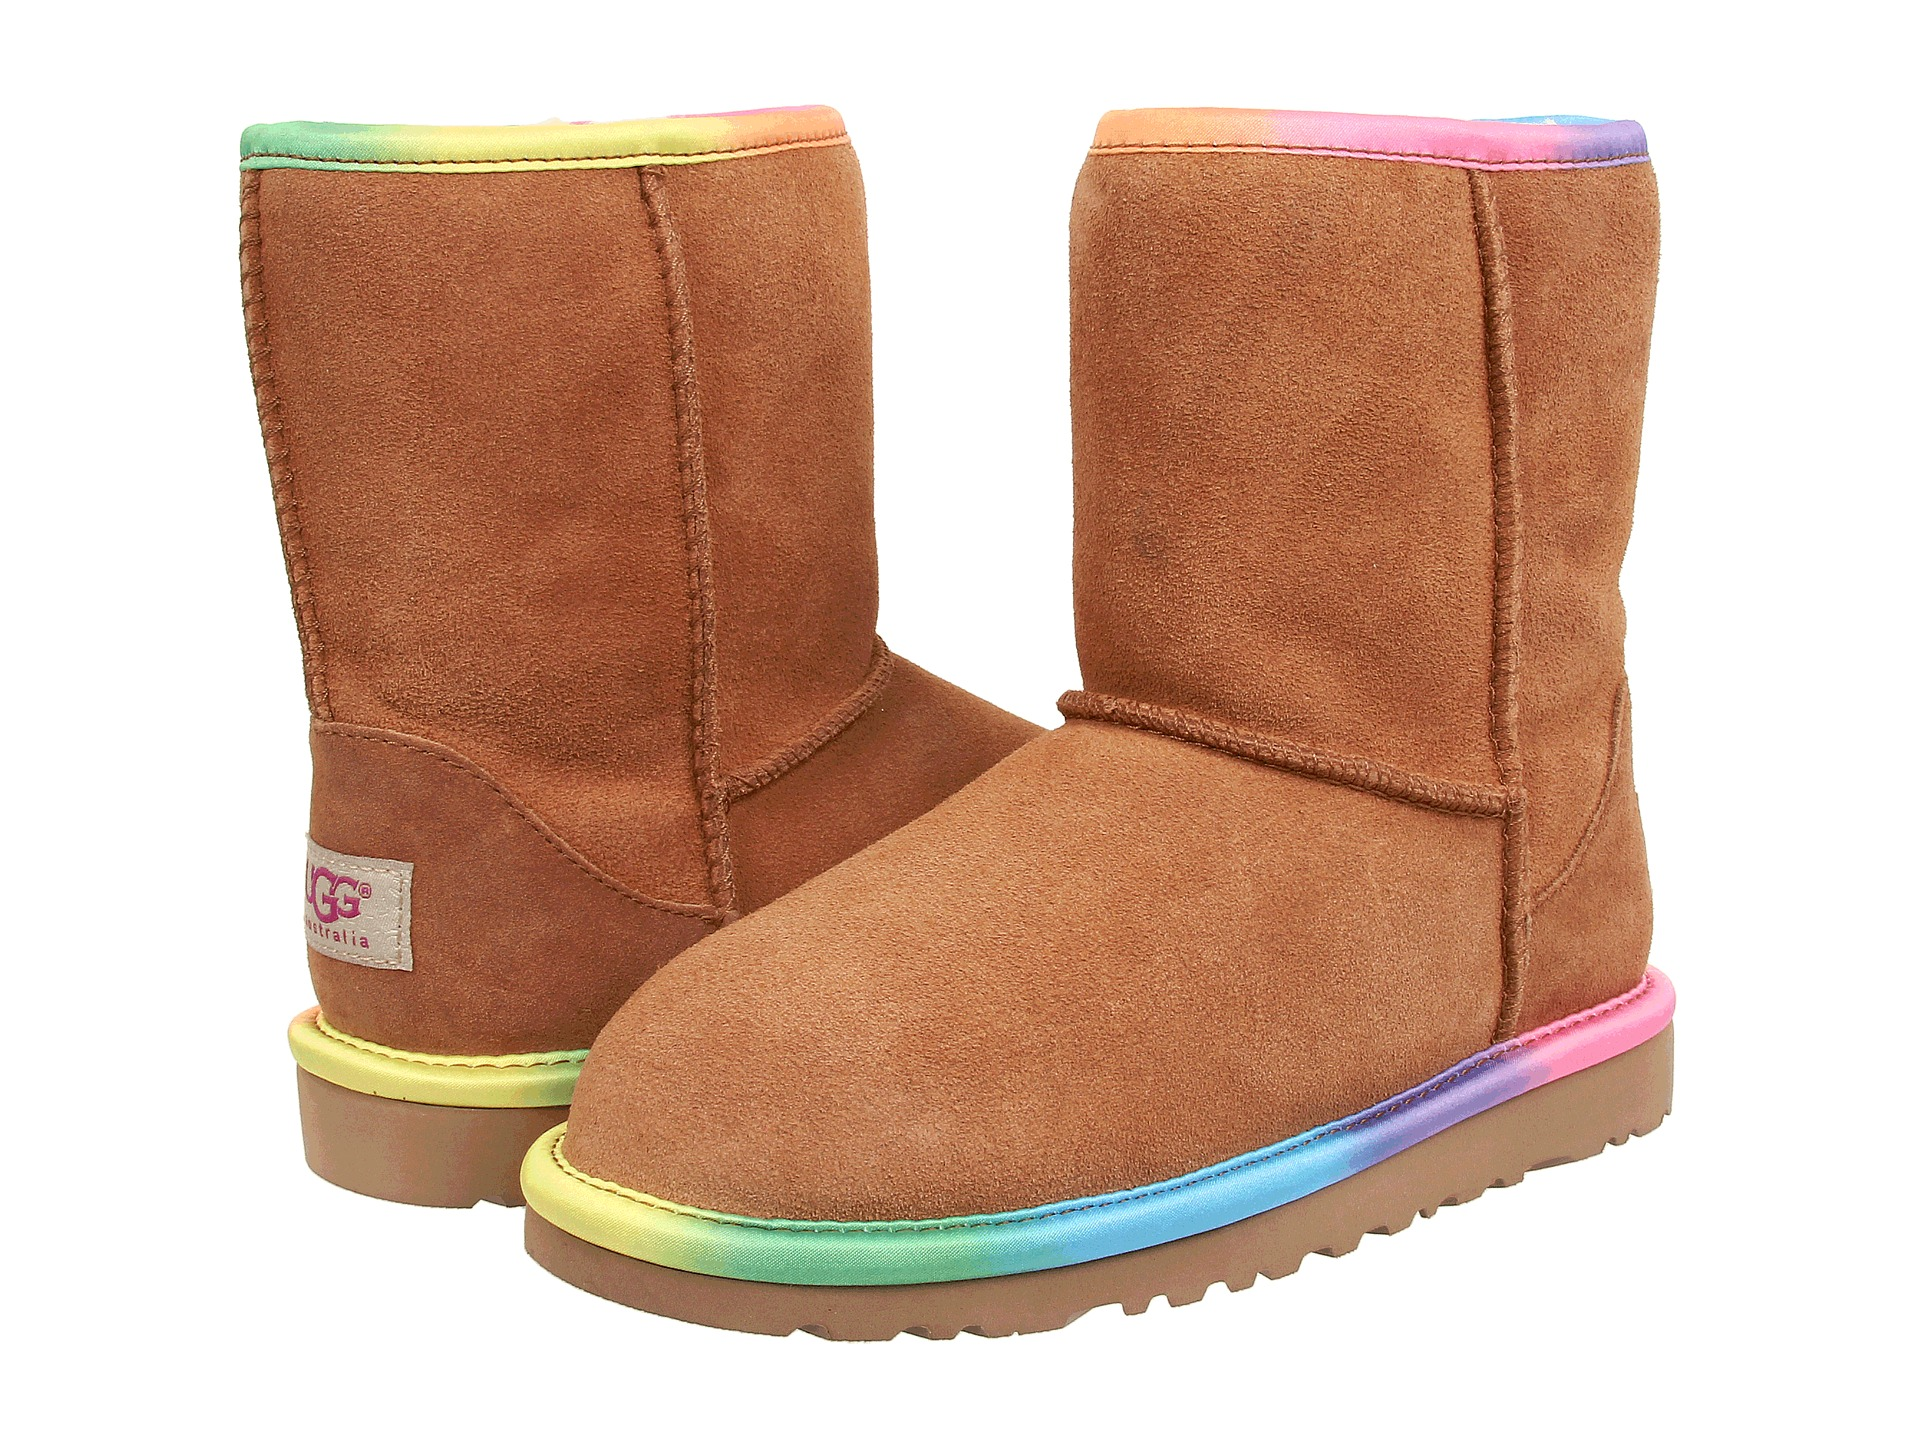 UGG Kids Boots Sale: Save Up to 40% Off! Shop gtacashbank.ga's huge selection of UGG Boots for Kids - Over 50 styles available. FREE Shipping & Exchanges, and a % price guarantee!